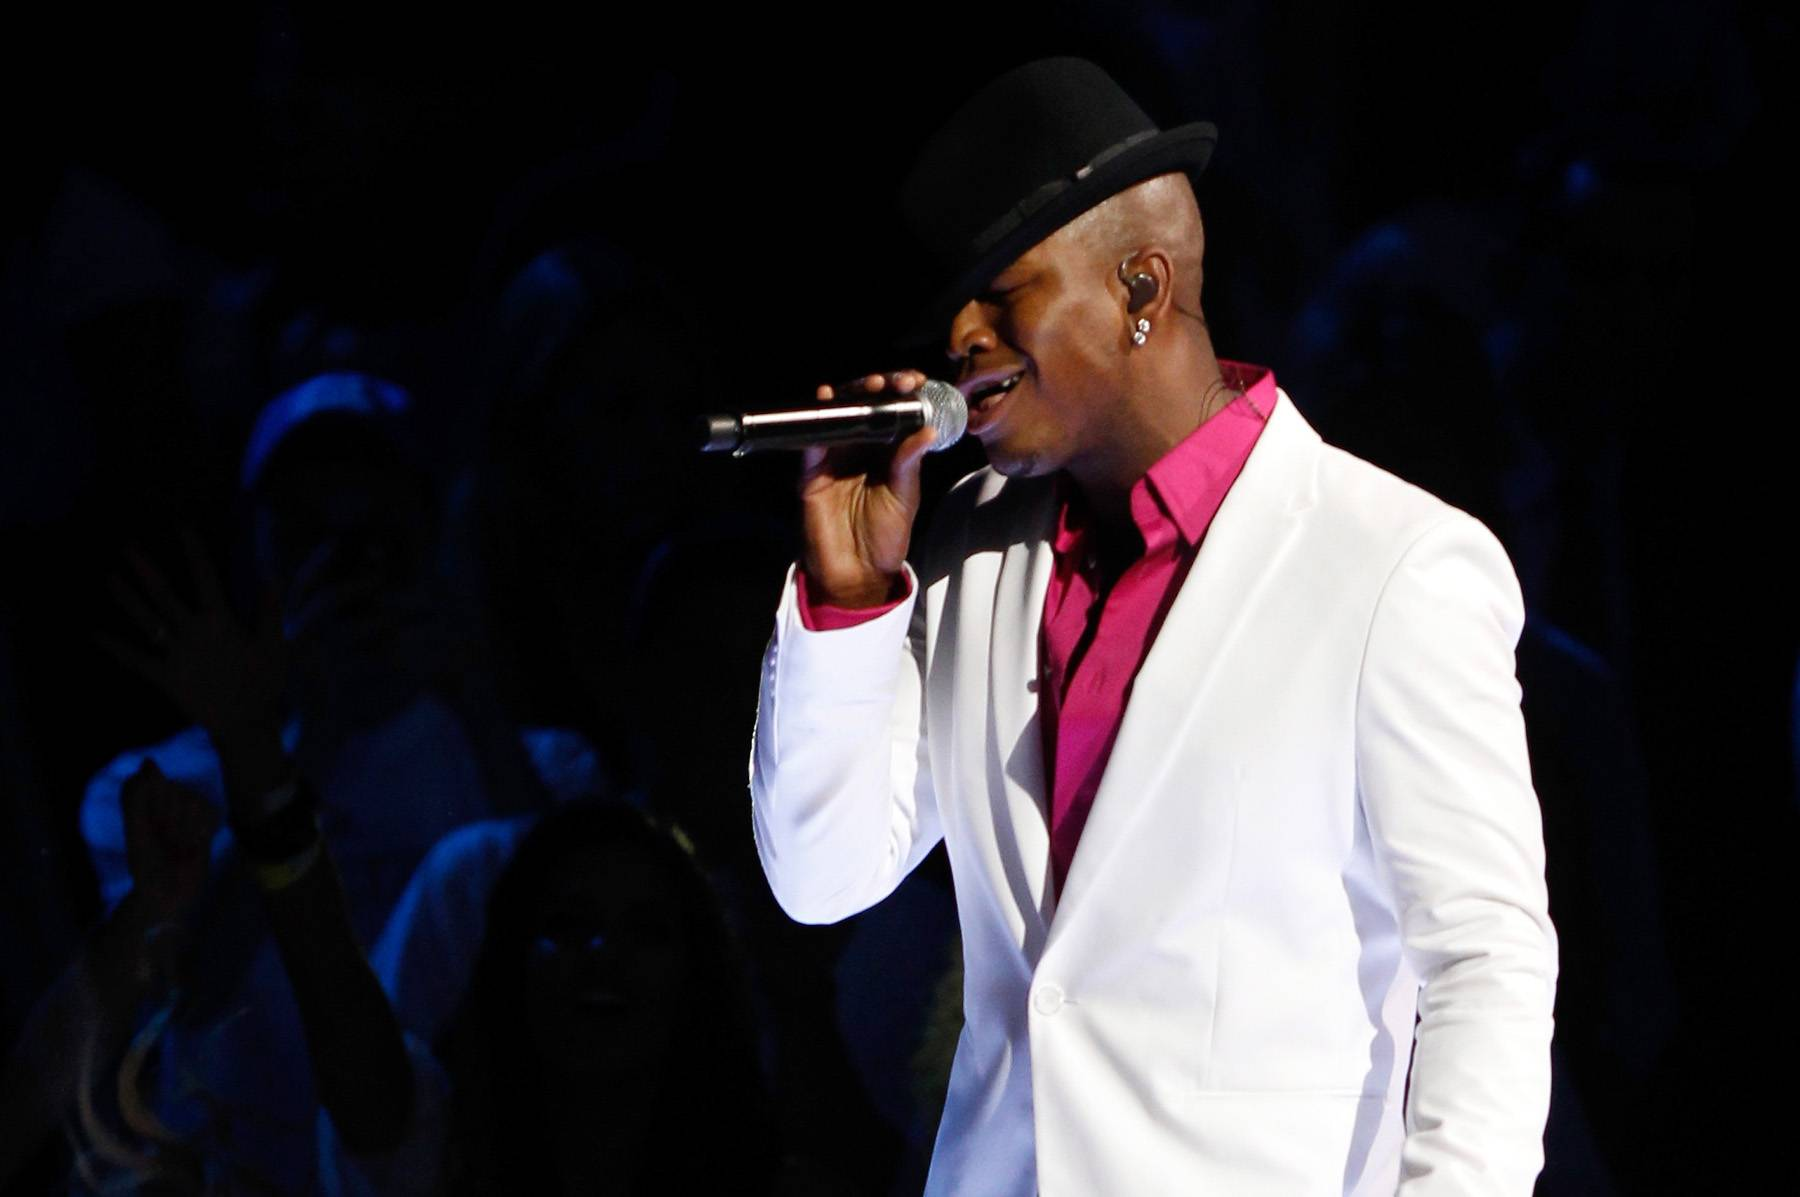 In the Spotlight - Recording artist Ne-Yo lights up the stage during halftime.(Photo: Mike Ehrmann/Getty Images)